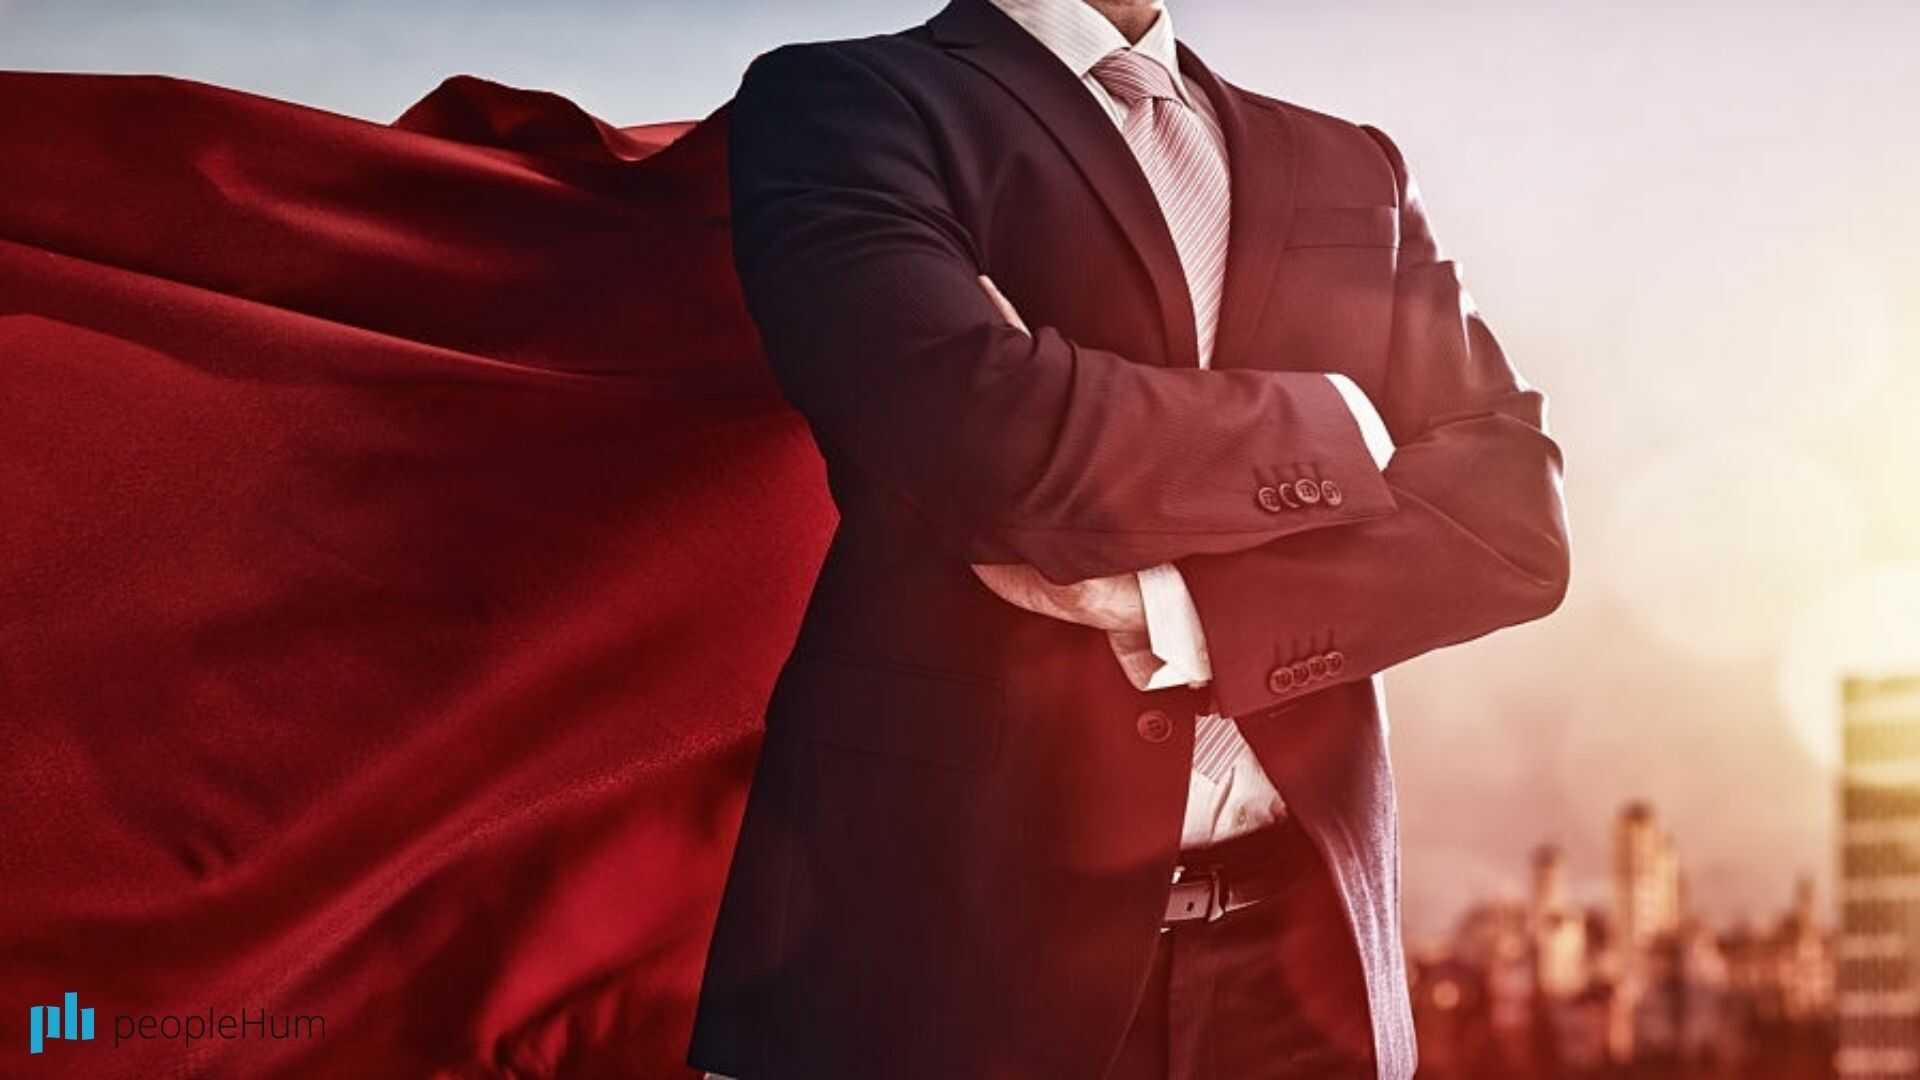 A leader is not a superhero!